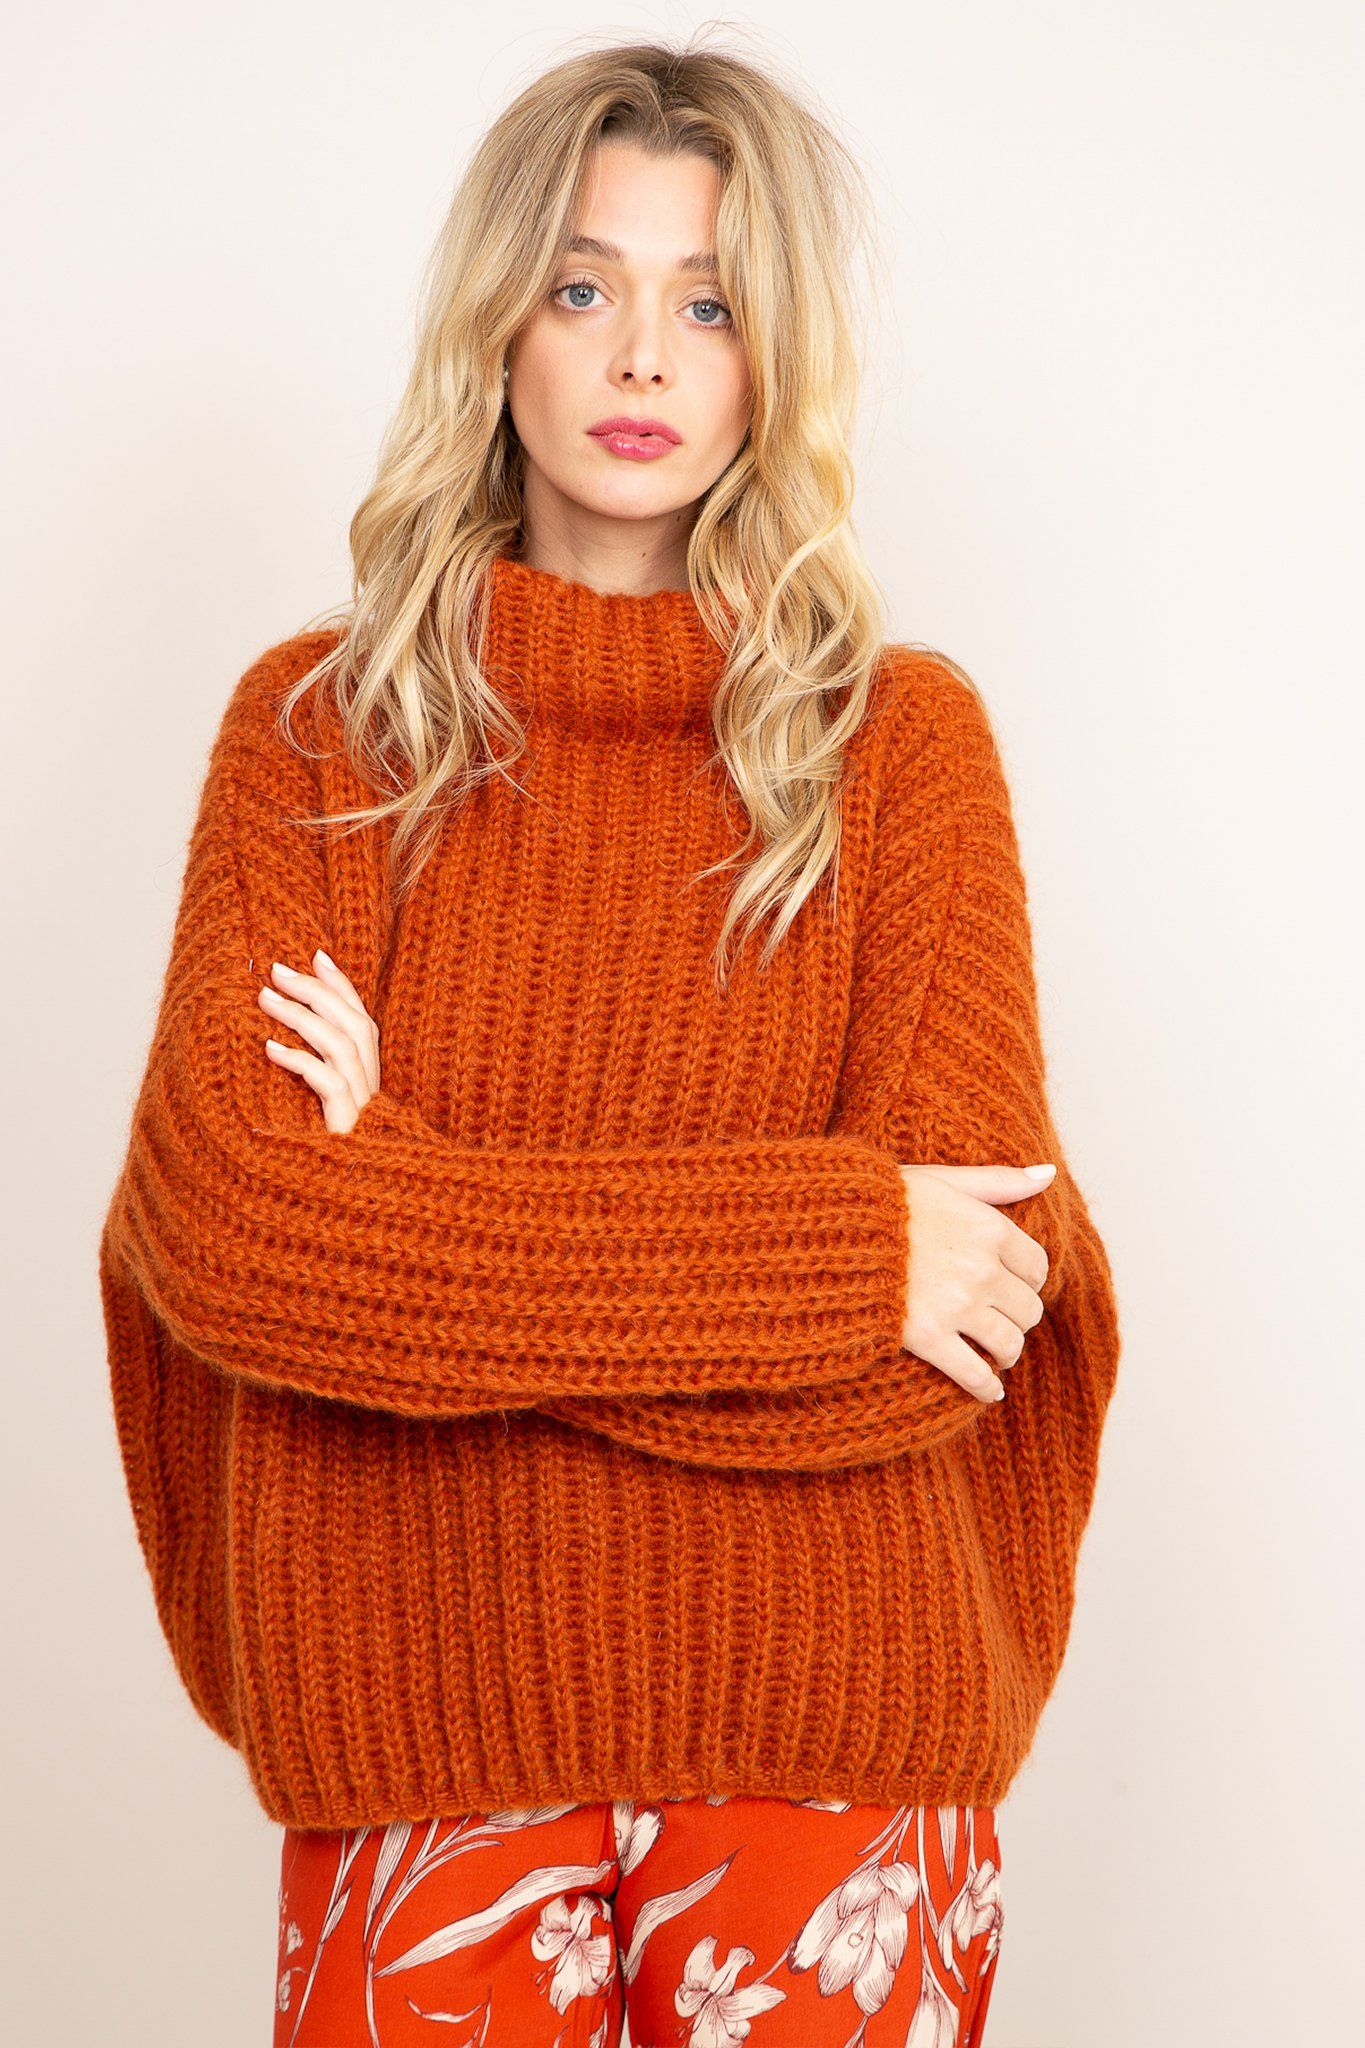 Lilou Sweater - Orange, [product_type]- Poppy Field the label